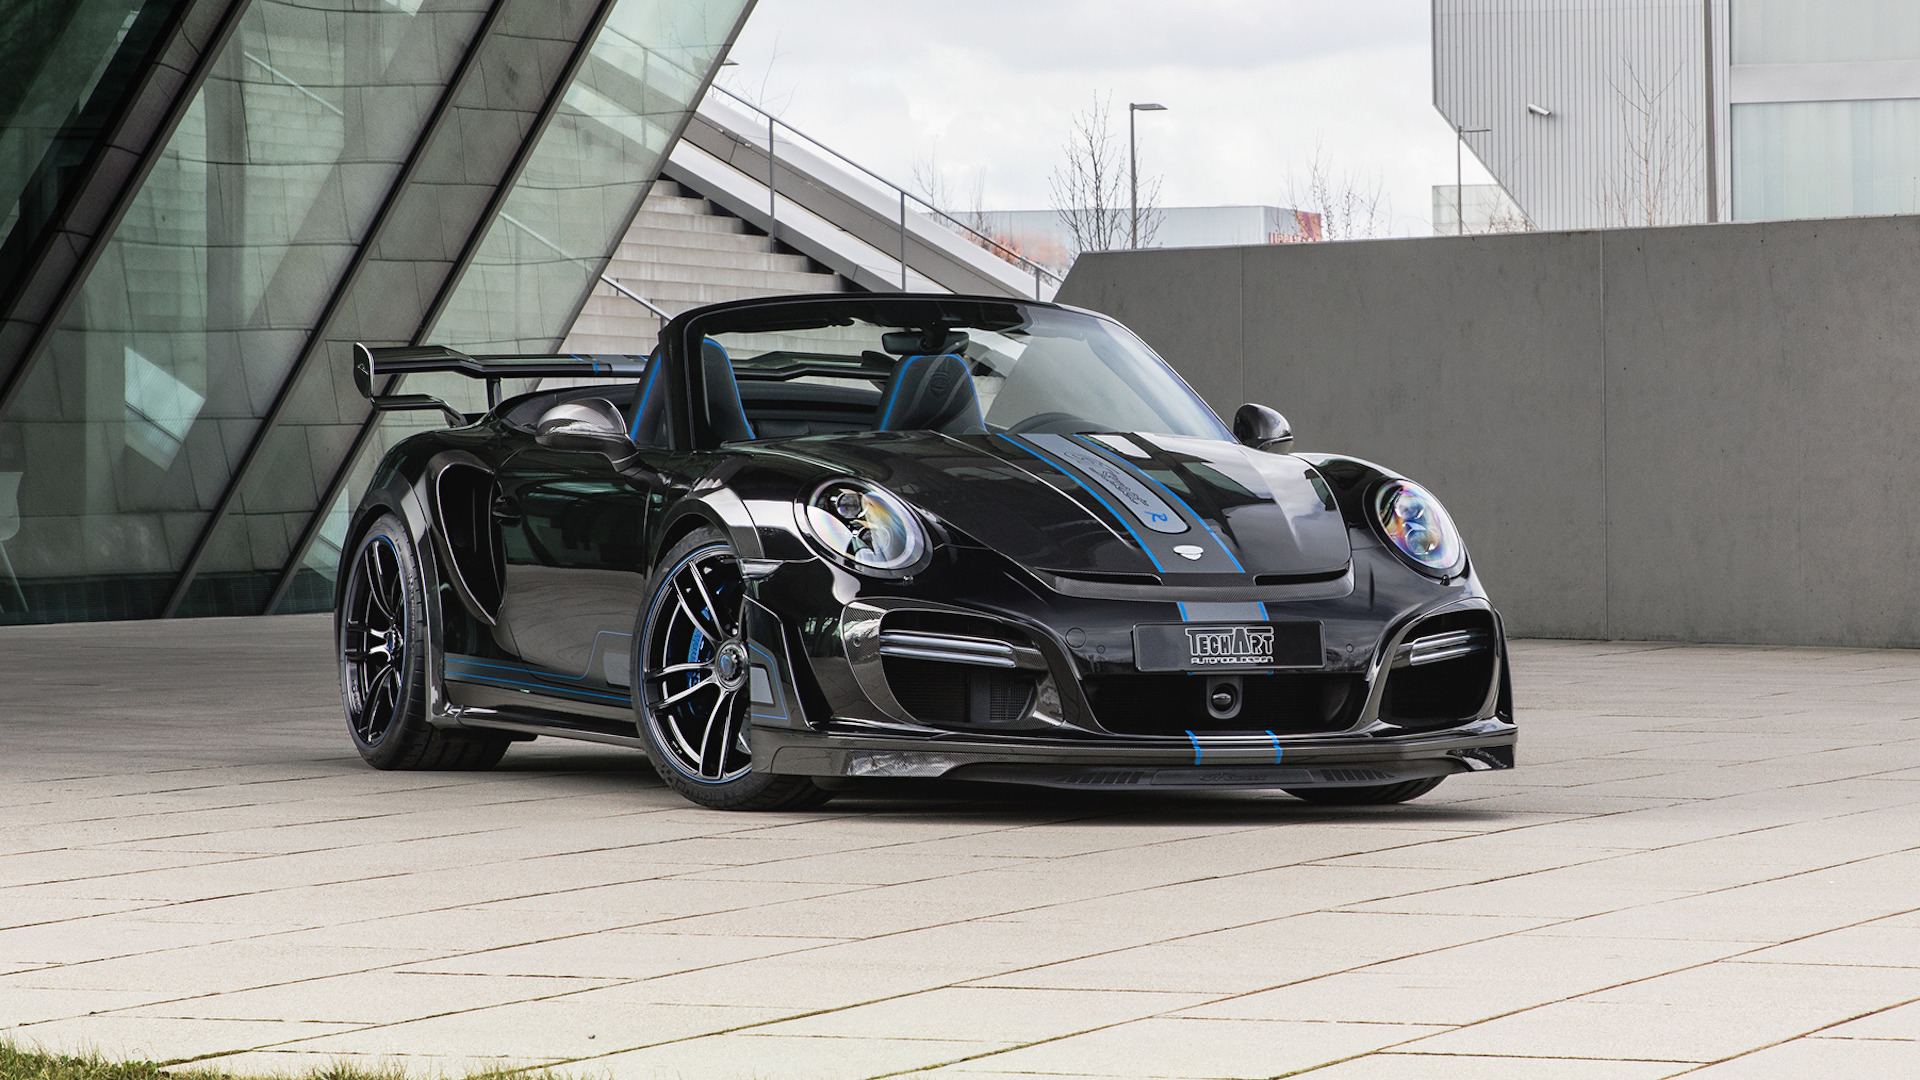 Techart S 711 Hp Porsche 911 Turbo Loses Its Roof